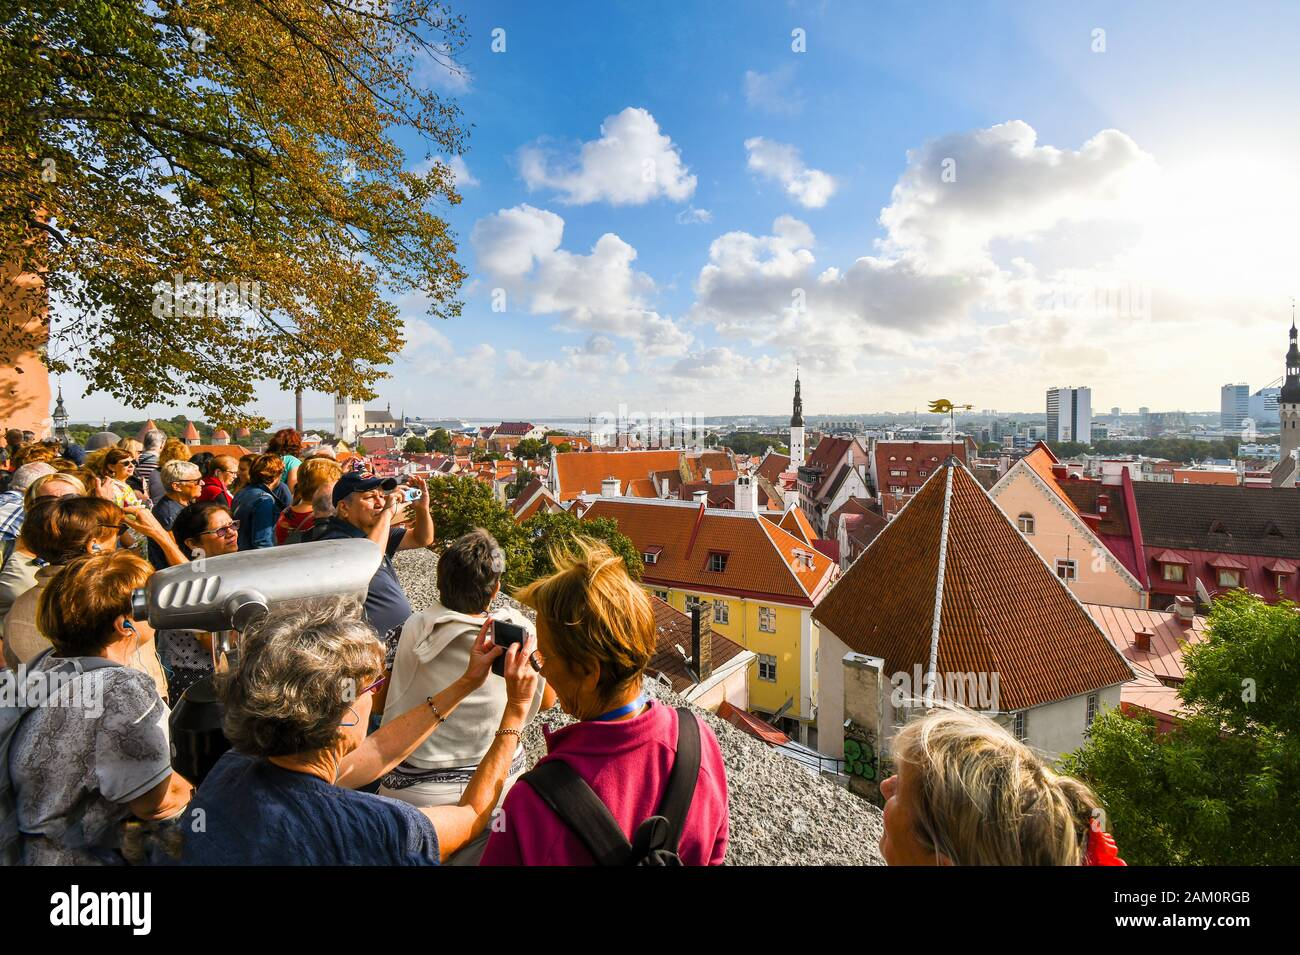 A crowd of tourists group together to take photos over Old Town Tallinn on Toompea Hill, overlooking the medieval Baltic city. Stock Photo